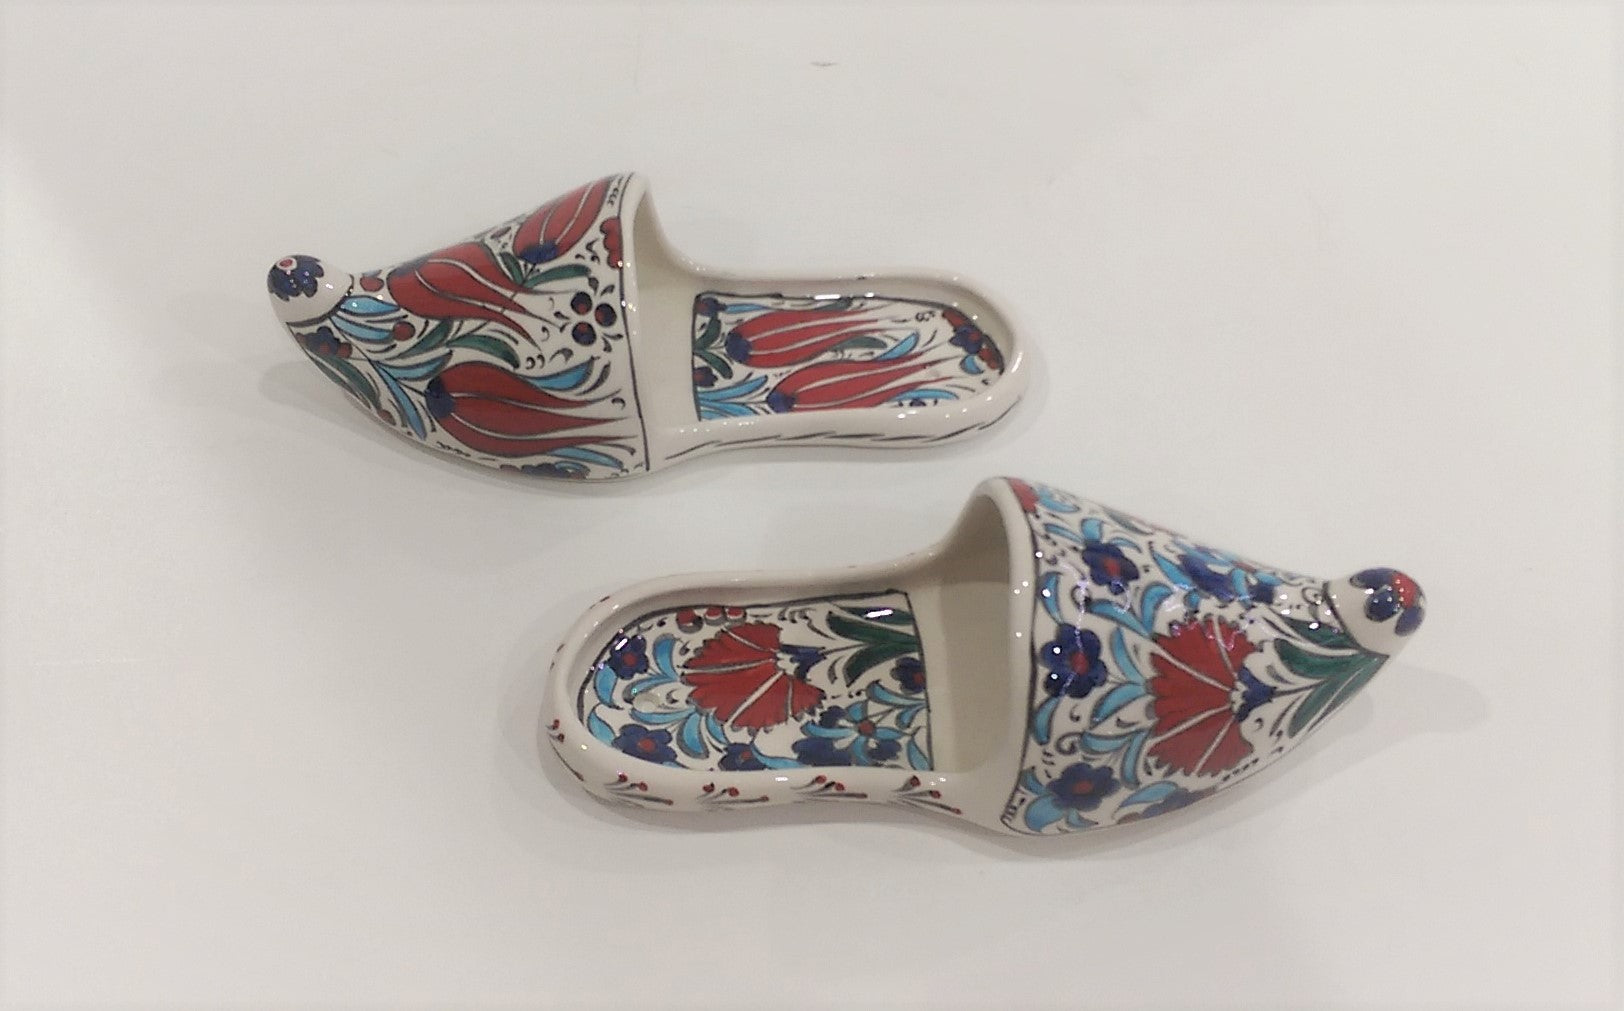 Decorative Ceramic pair of Sandals 004